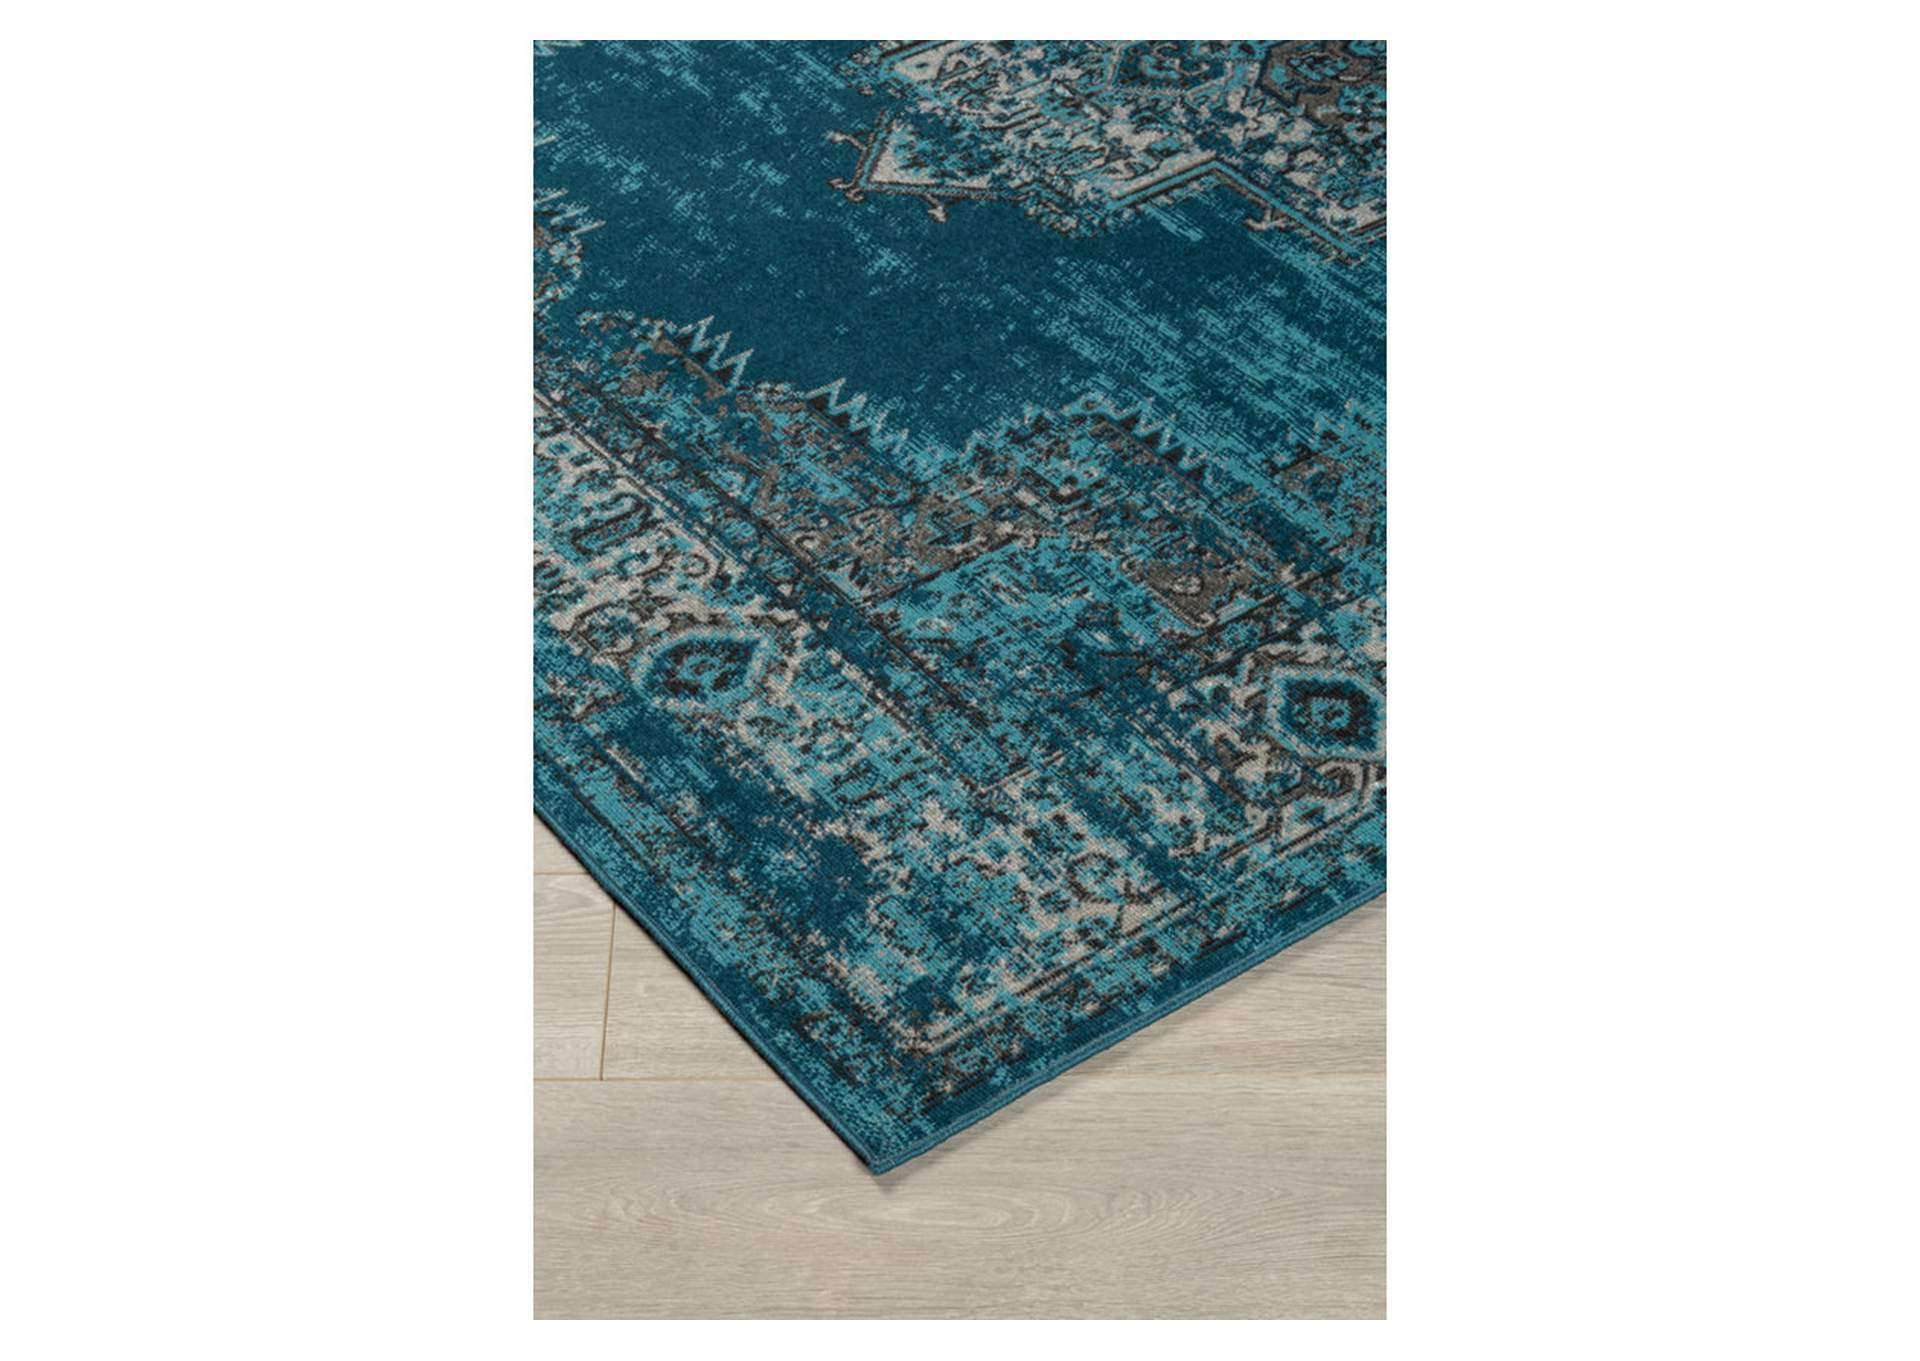 Moore Blue/Teal Medium Rug,Direct To Consumer Express